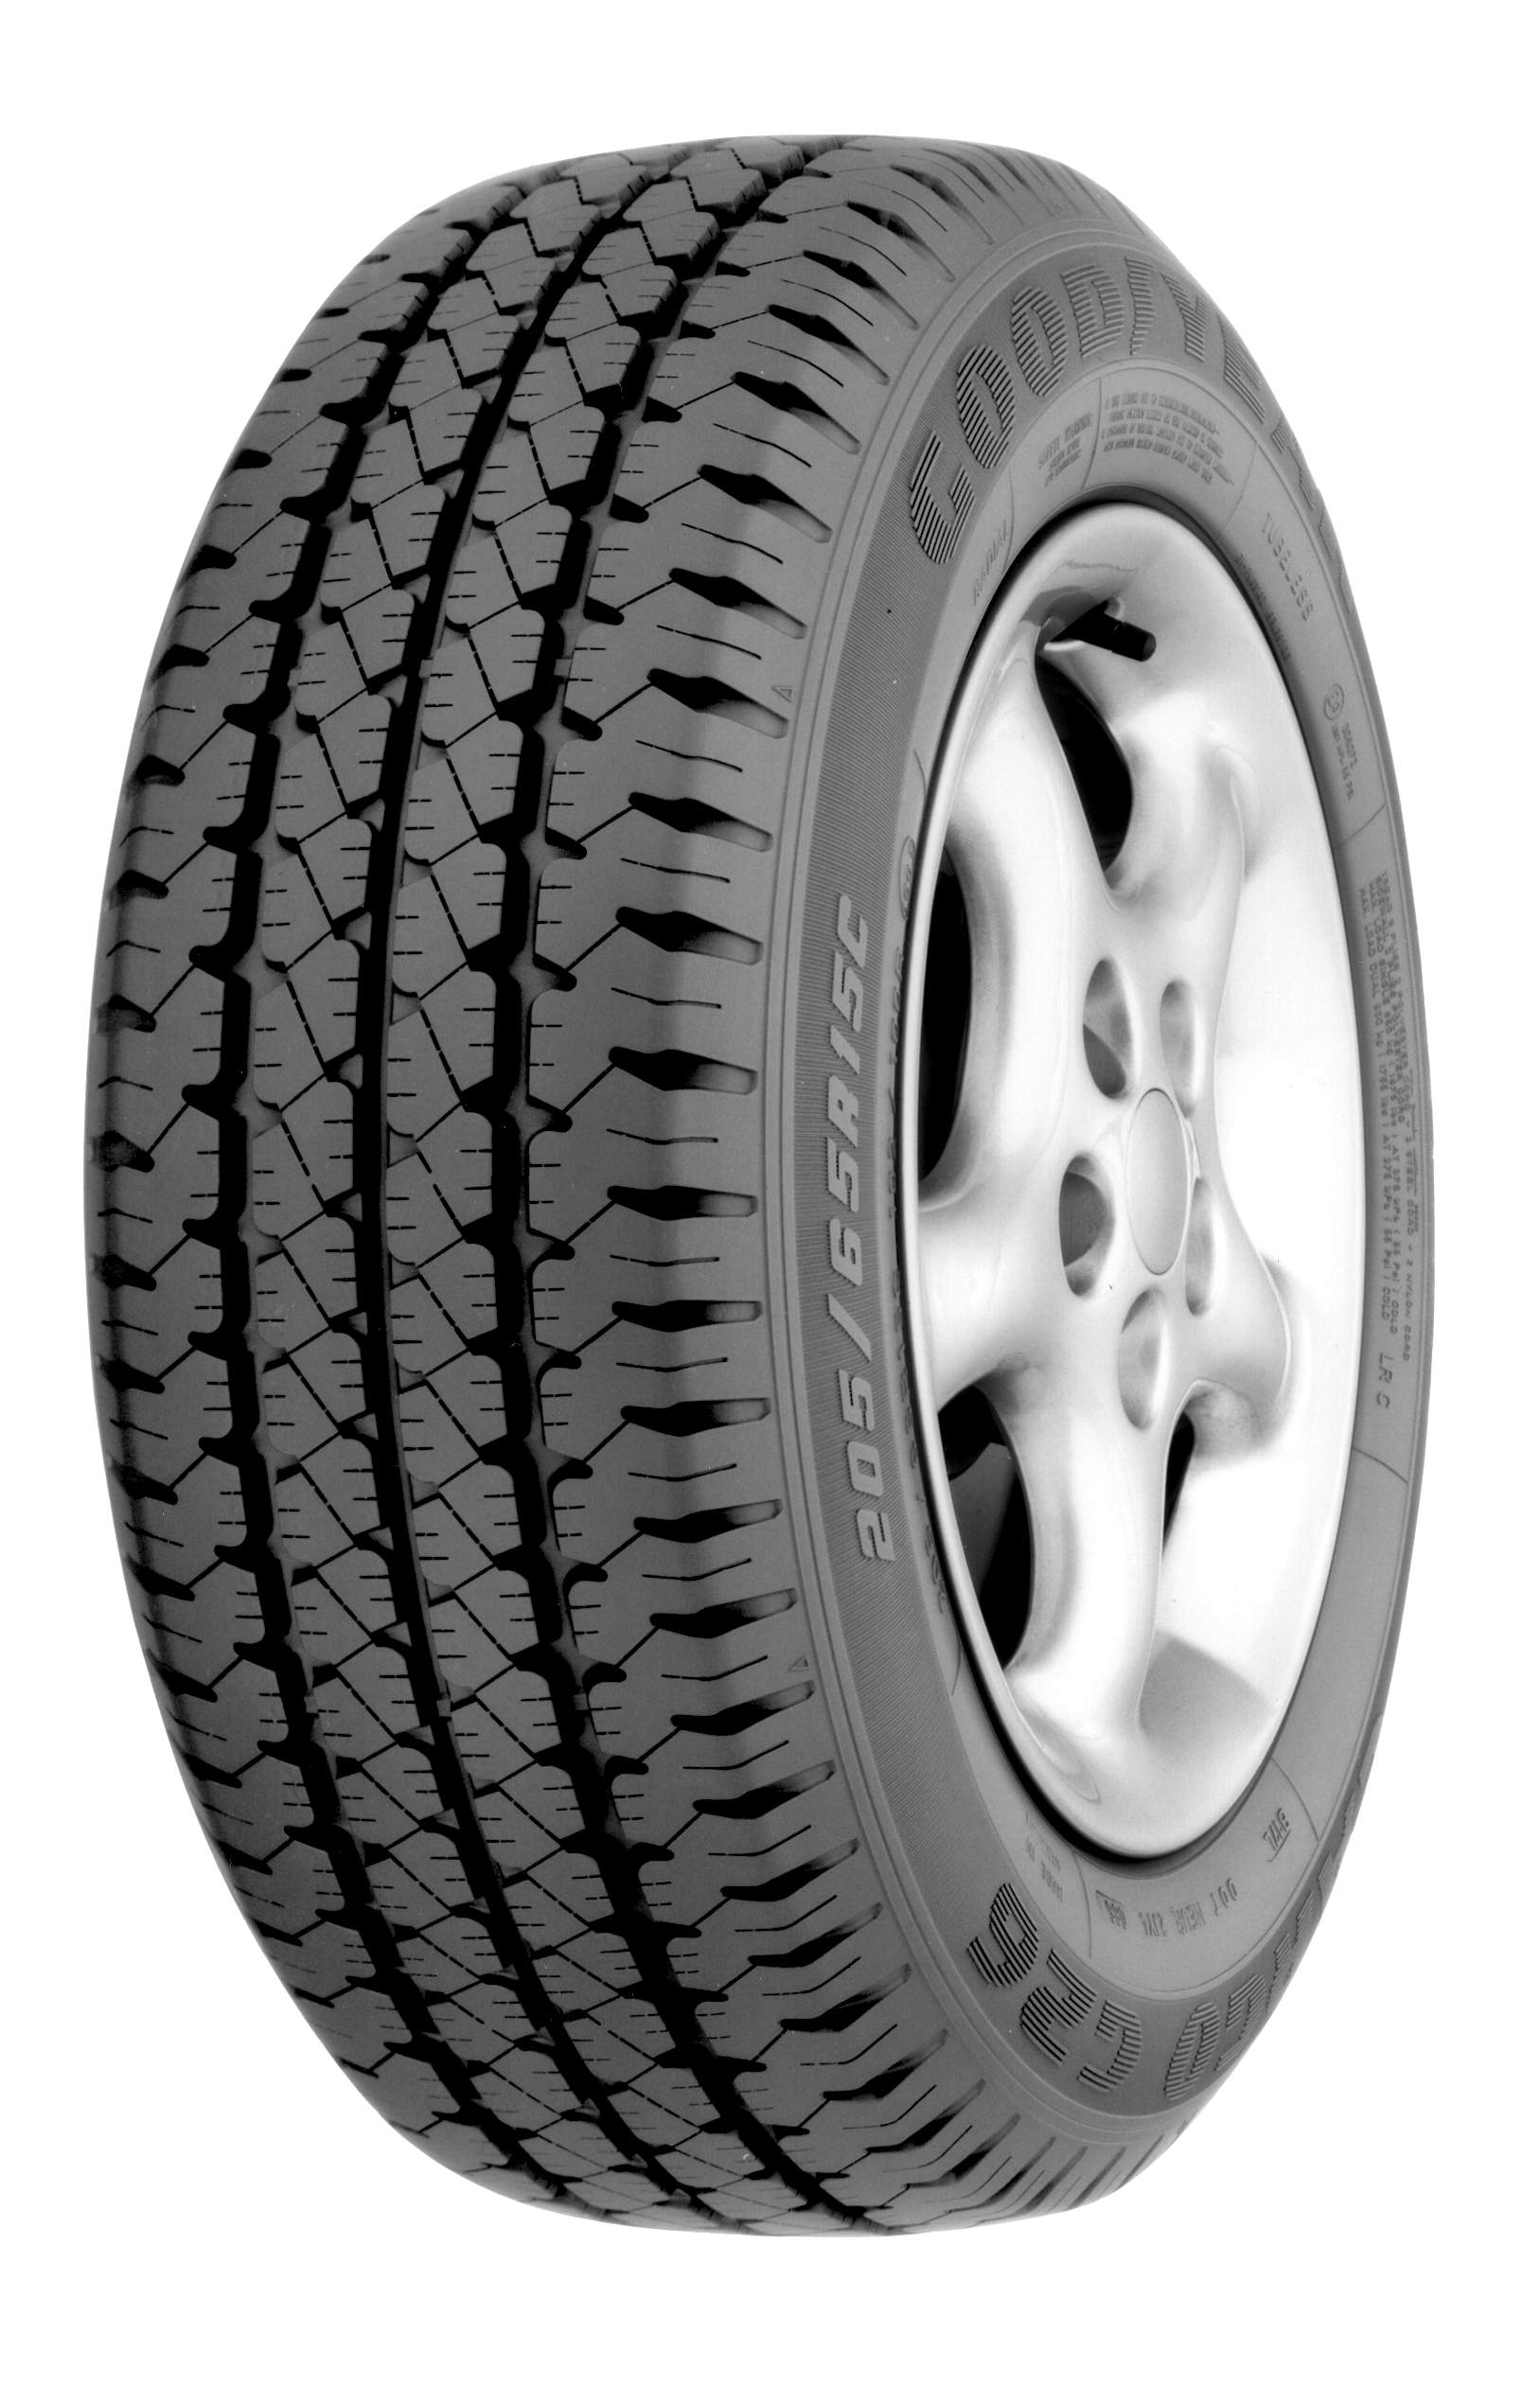 Tire-shot-Cargo-G26-3_4-view-GY-on-top_Original_60157-1